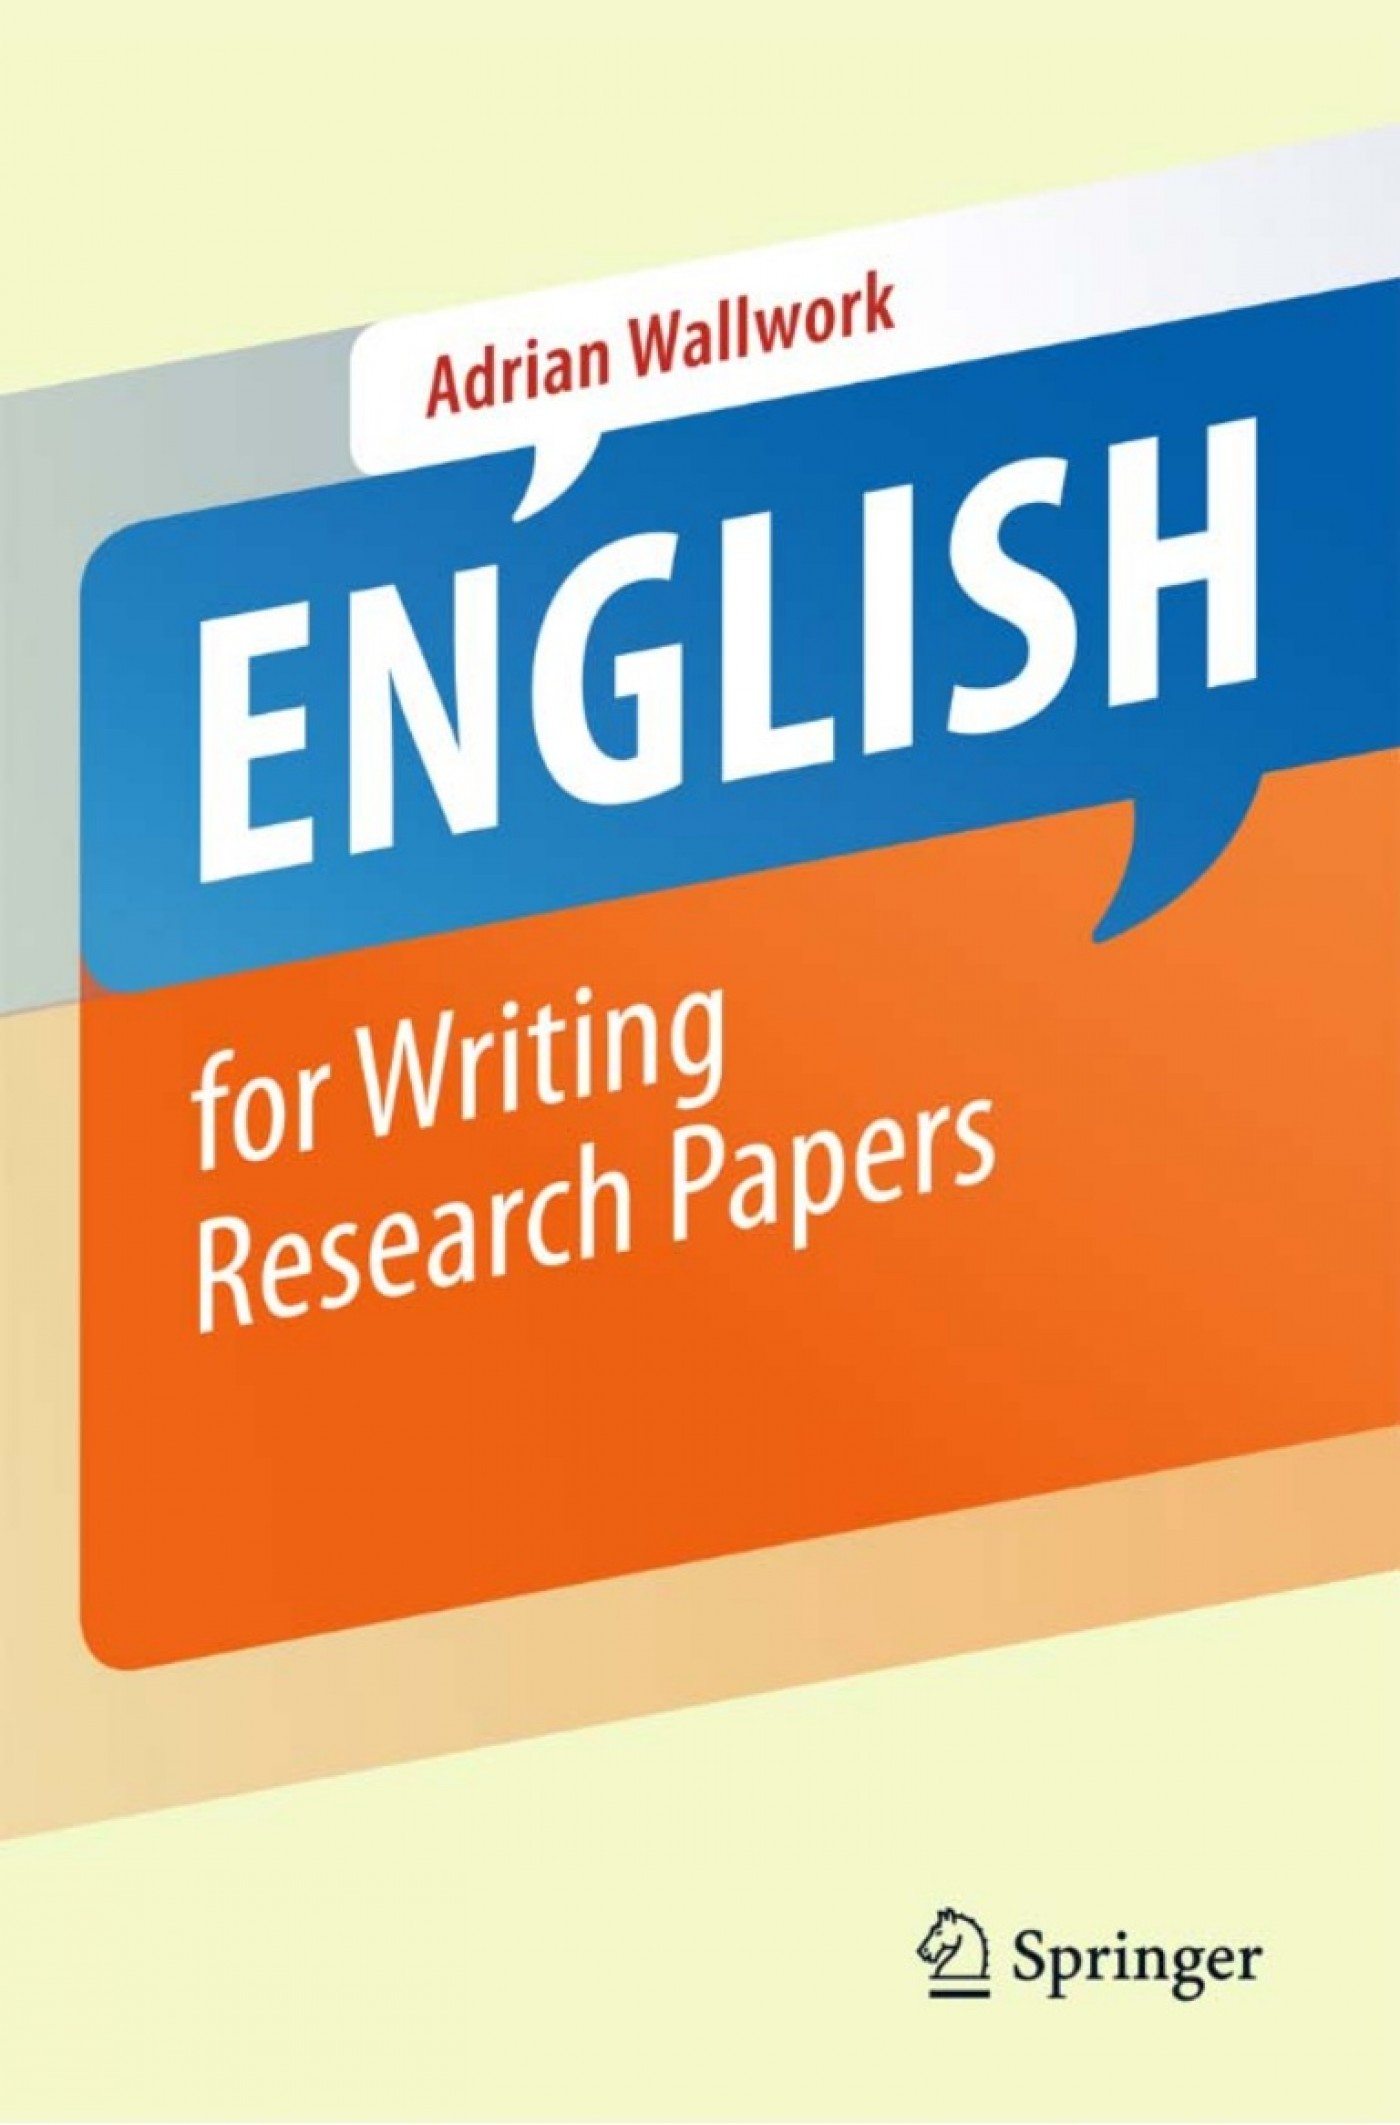 019 Englishforwritingresearchpapers Conversion Gate01 Thumbnail Writing Research Striking Paper Papers A Complete Guide 16th Edition Pdf James D Lester Outline 1400